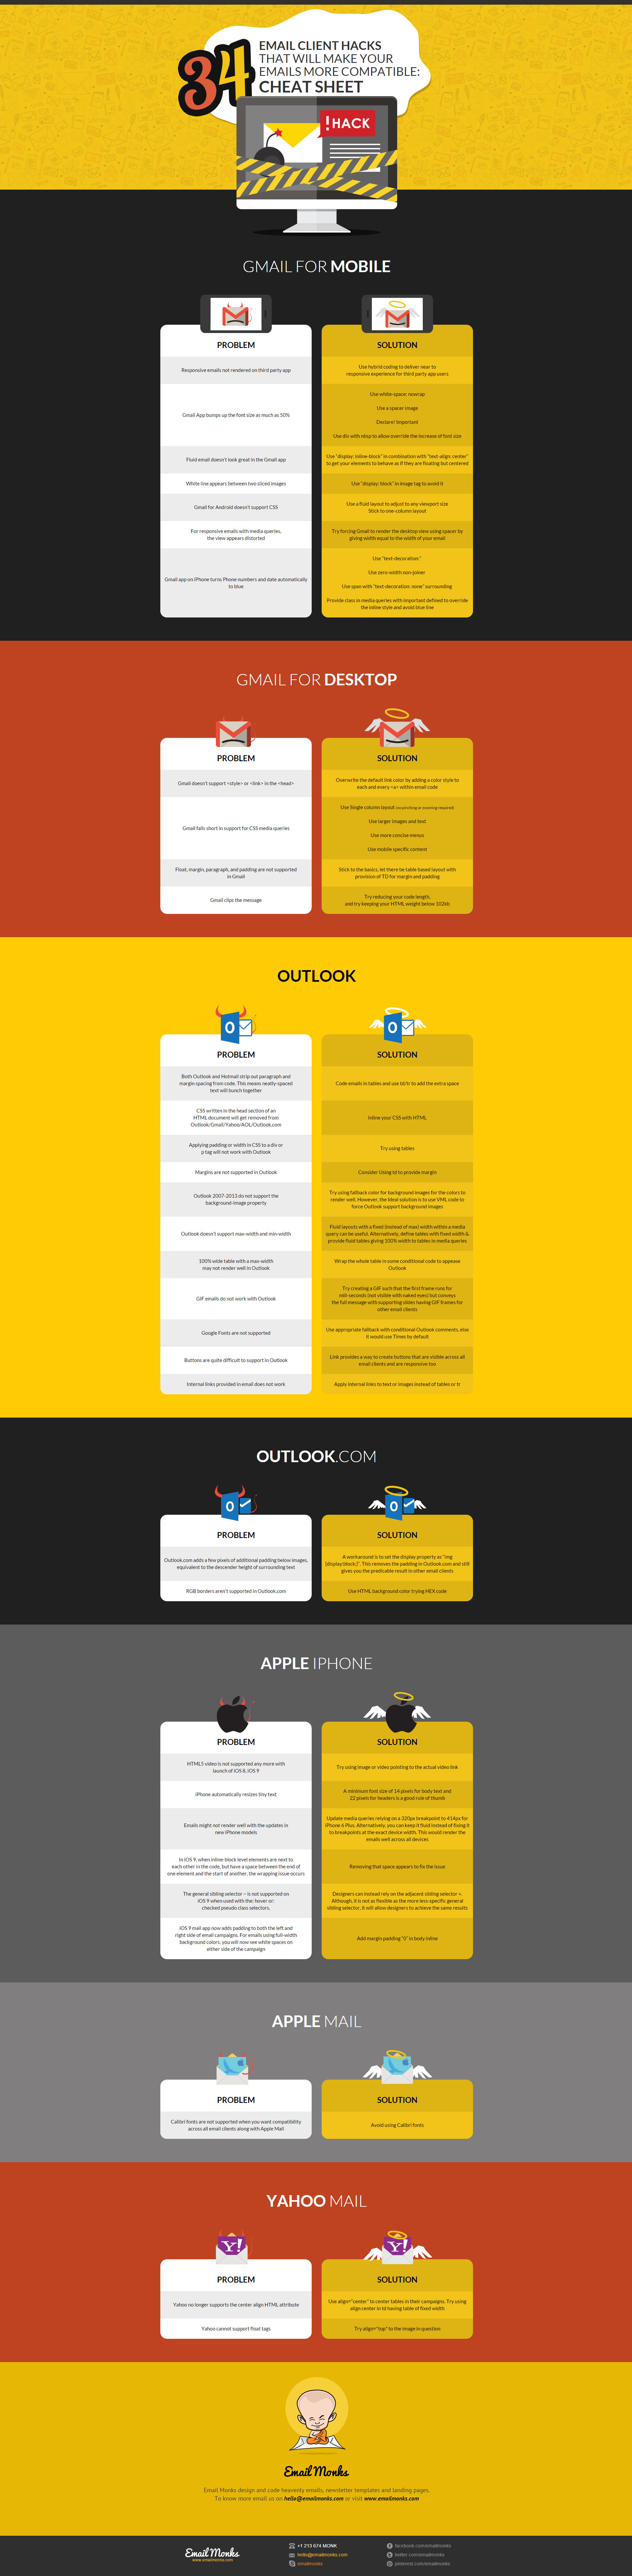 34 Email Client Hacks: Infographic